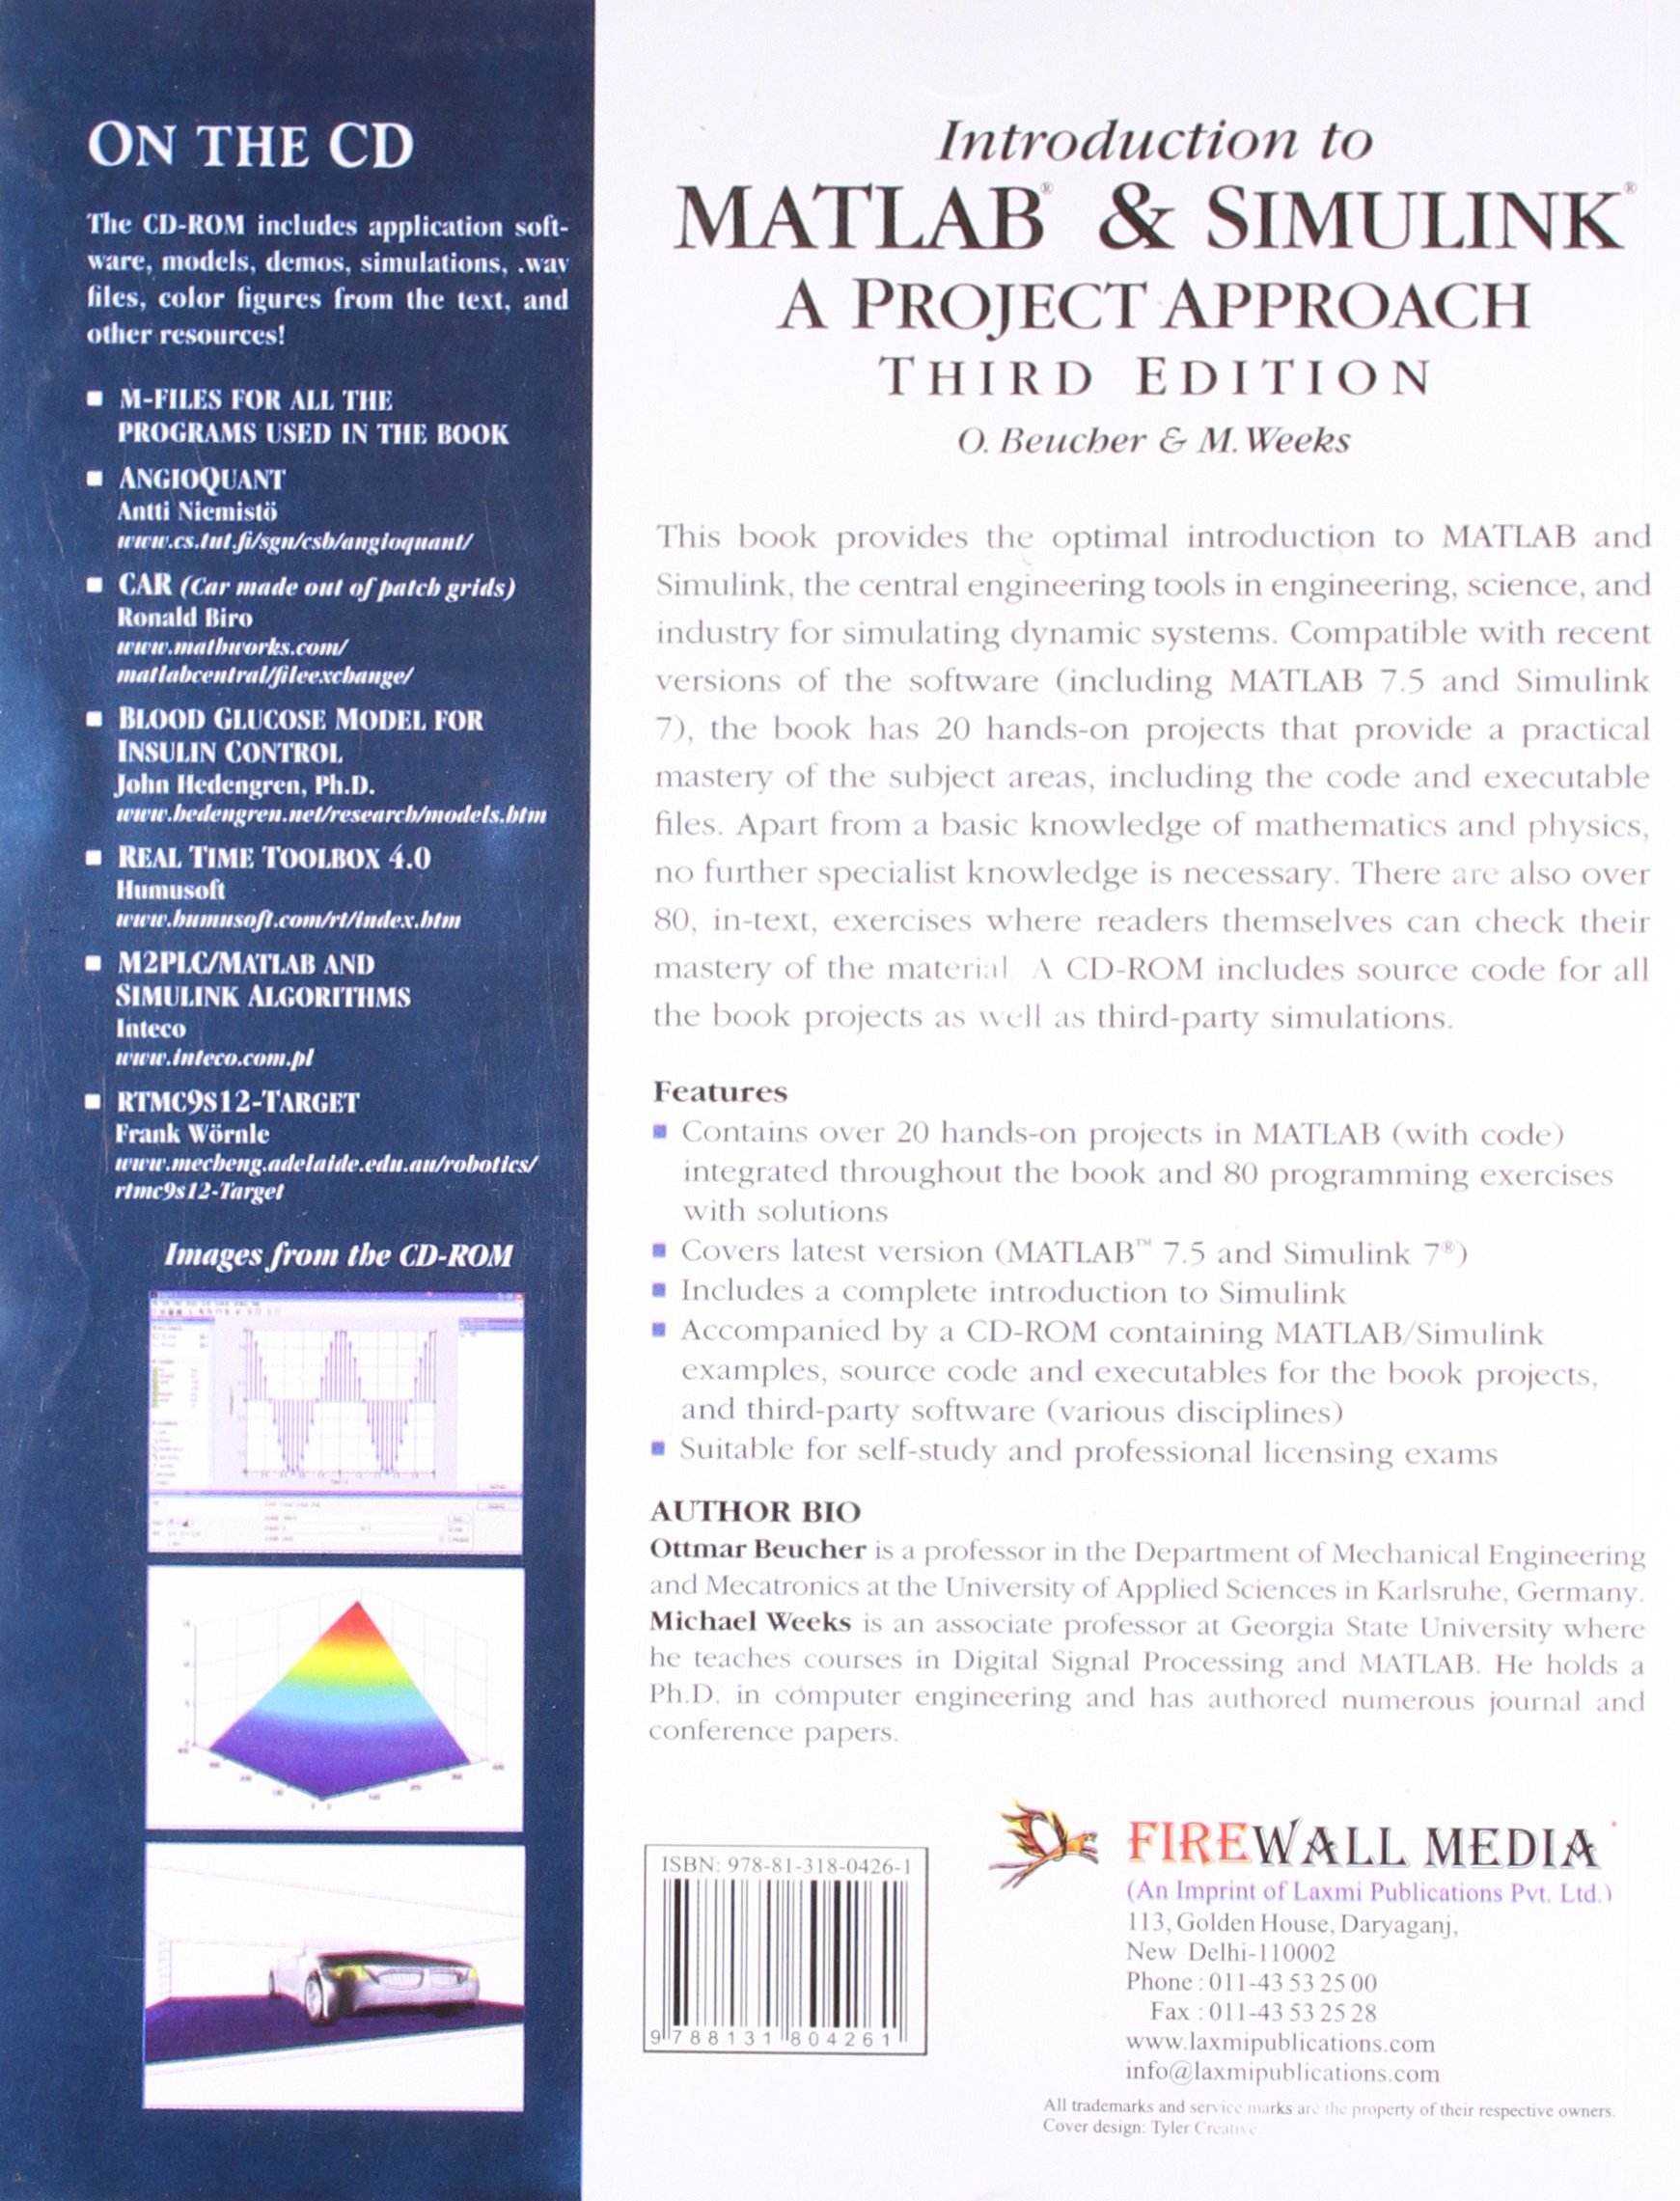 Buy Introduction to MATLAB & SIMULINK: A Project Approach